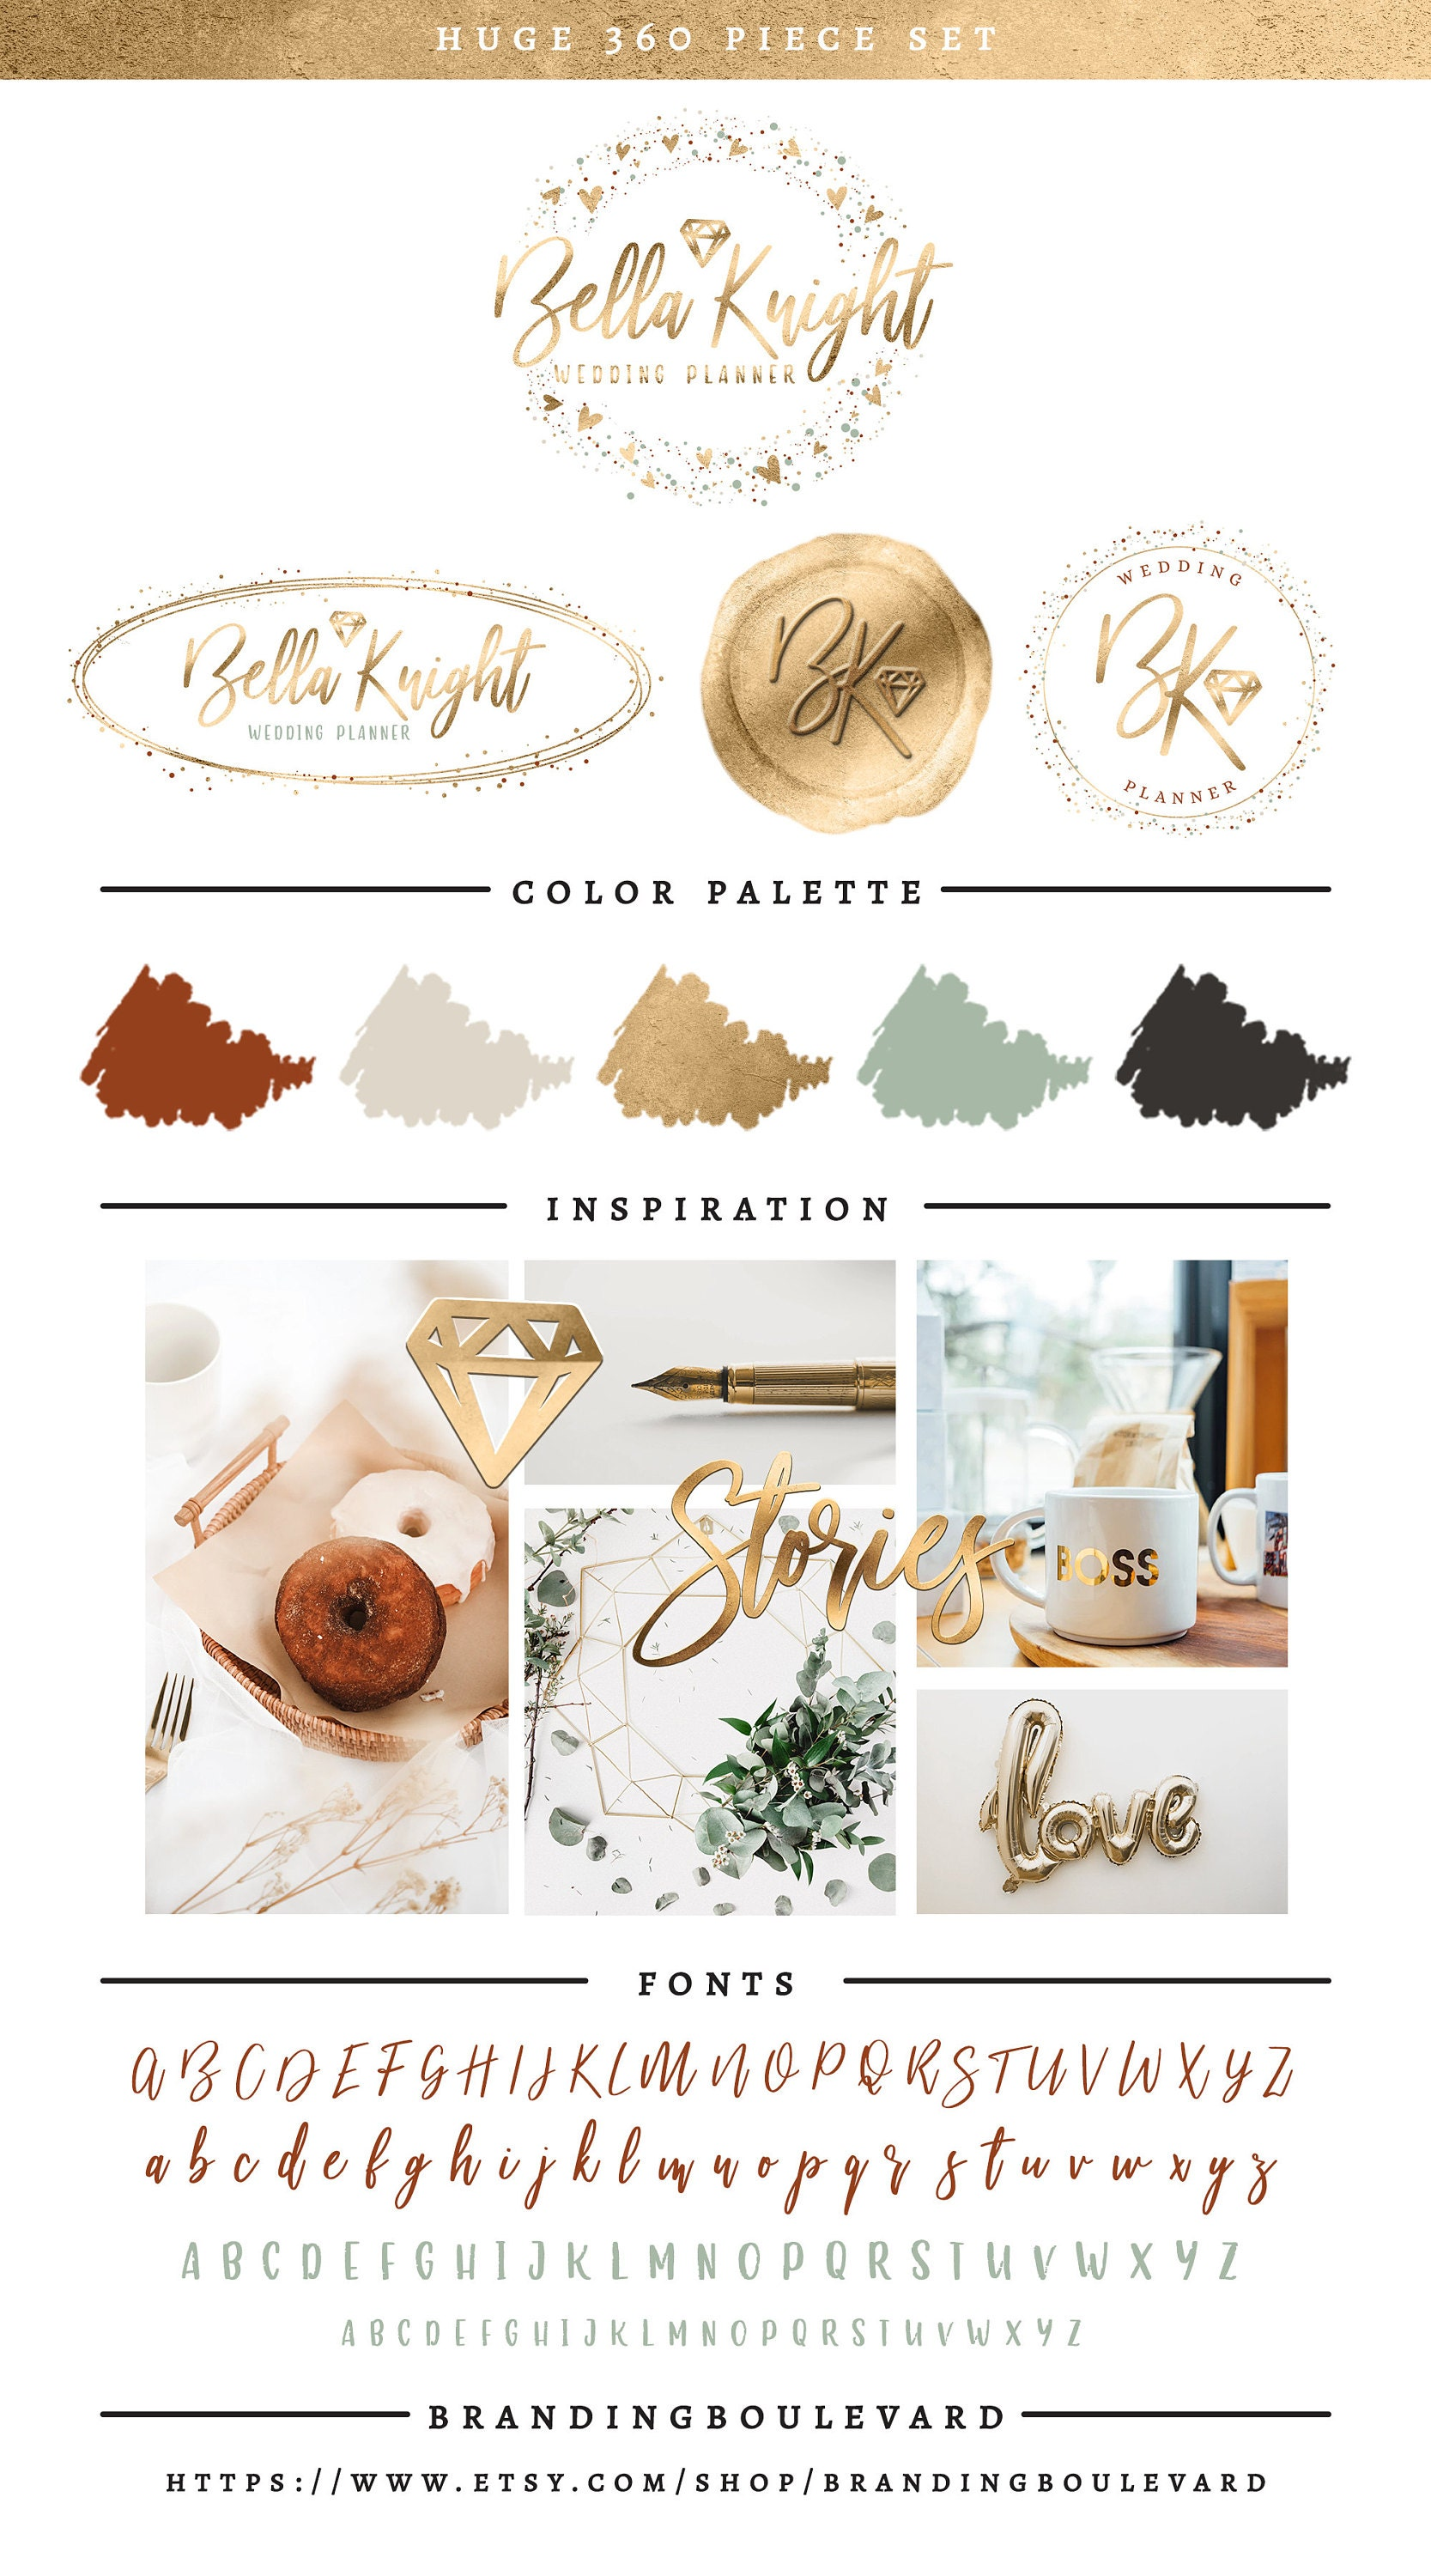 Bella Knight Logo Package - Elegant Diamond Wax Seal Logos - For Wedding or Jewelry Boutiques